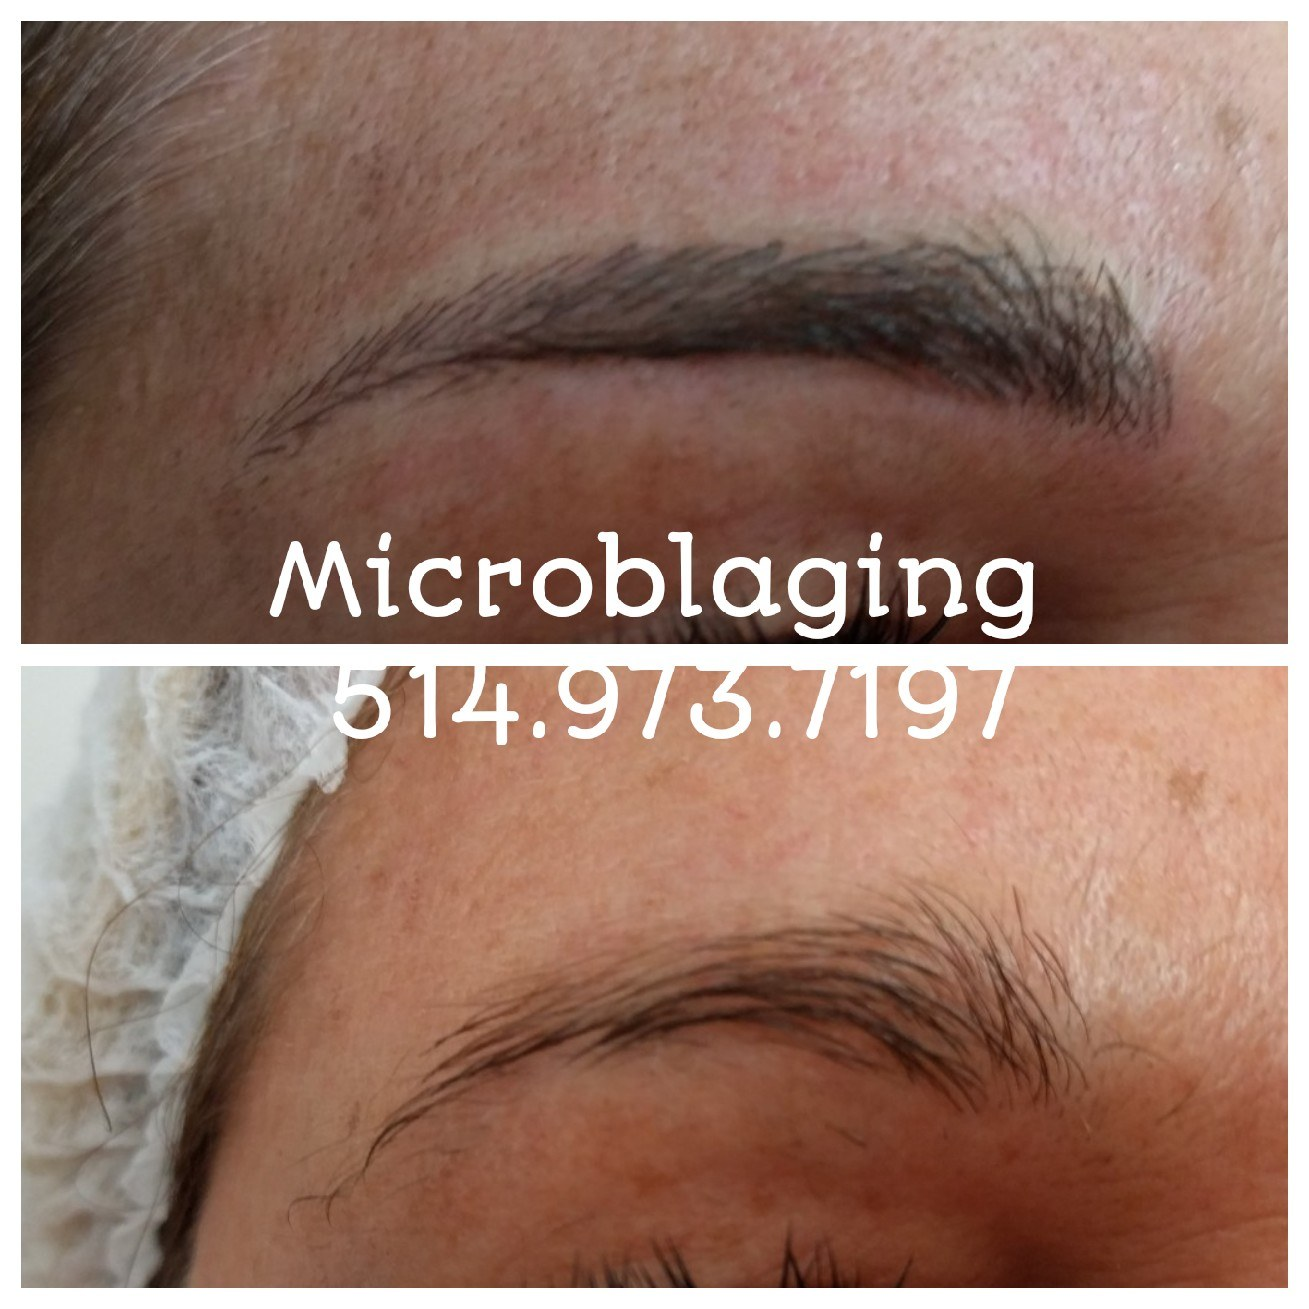 extension-cils-montreal-microblading